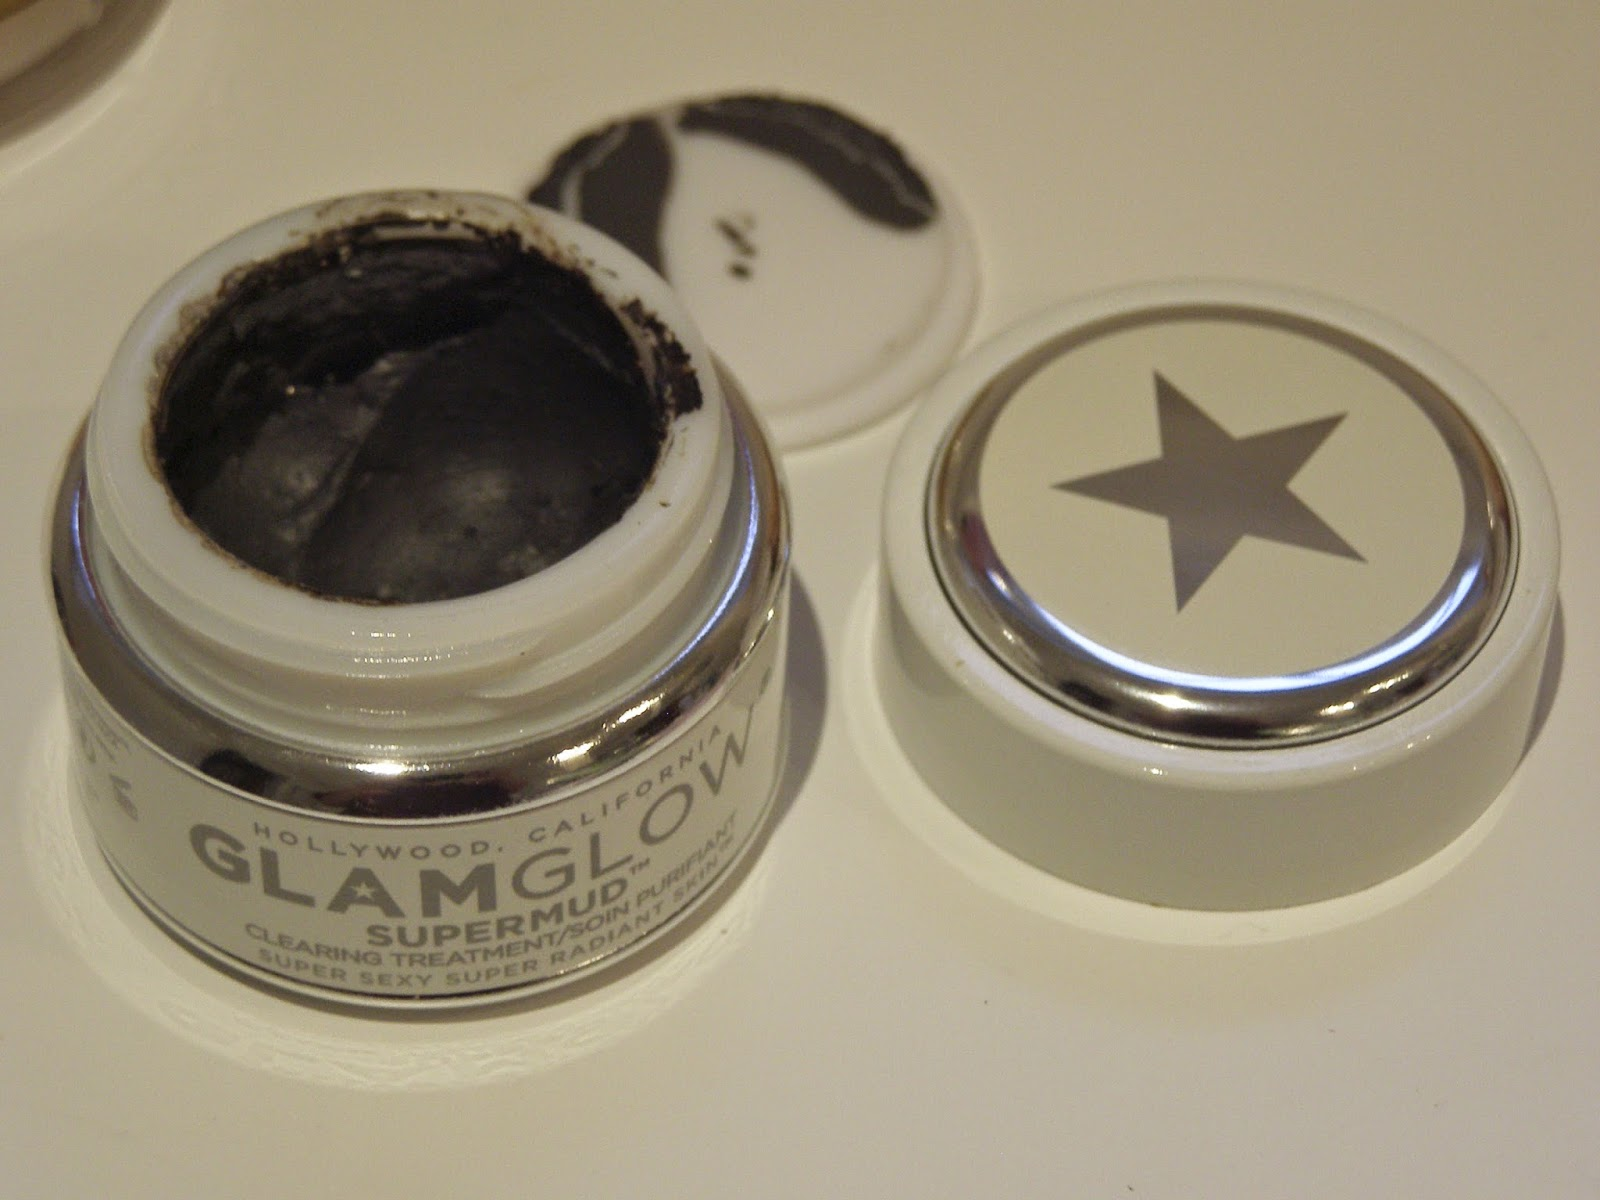 Glamglow Super mud cleaning treatment